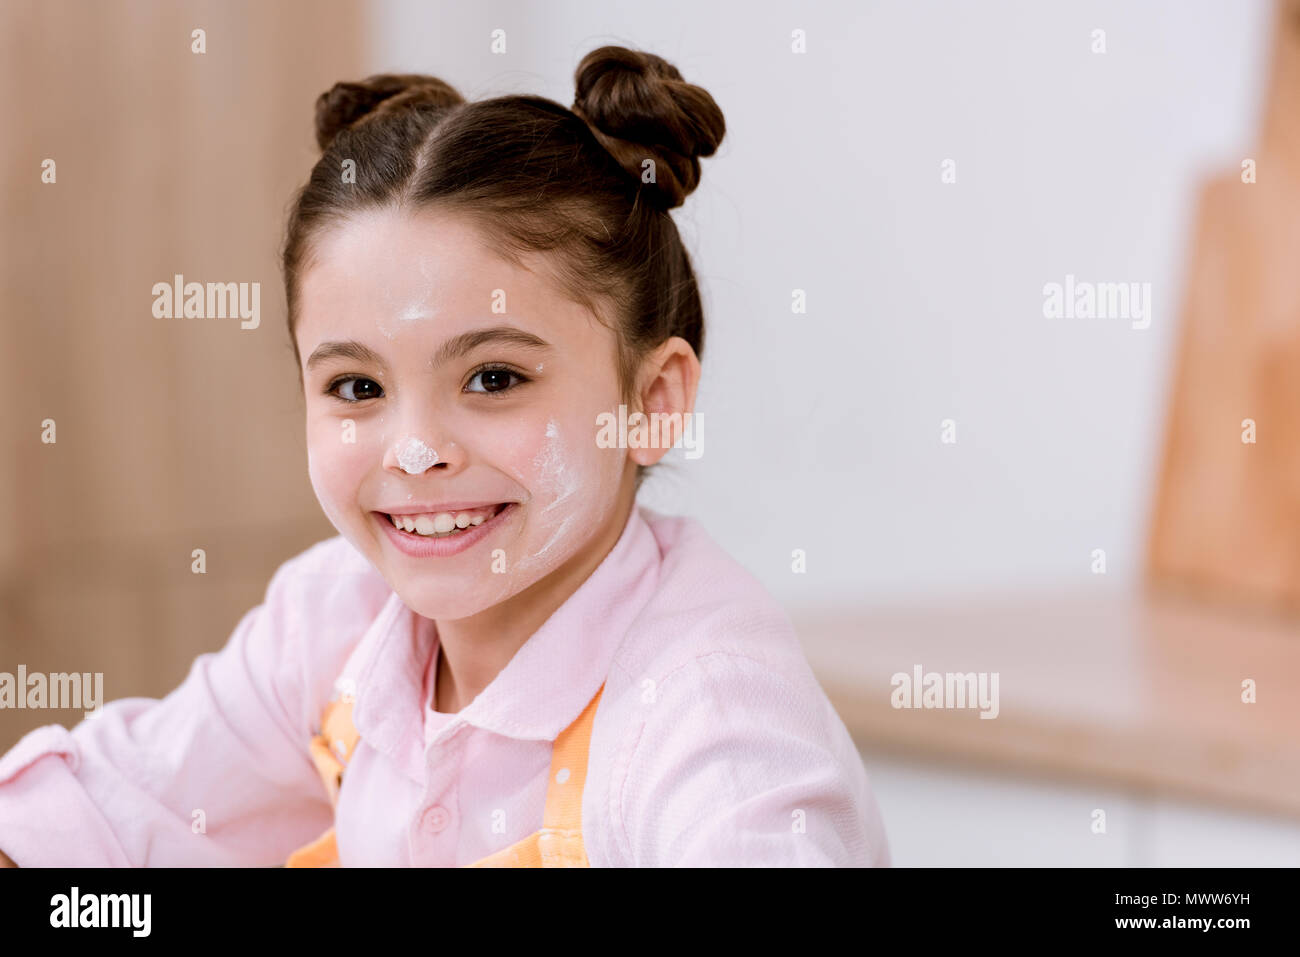 close-up portrait of little child with flour on face looking at camera - Stock Image